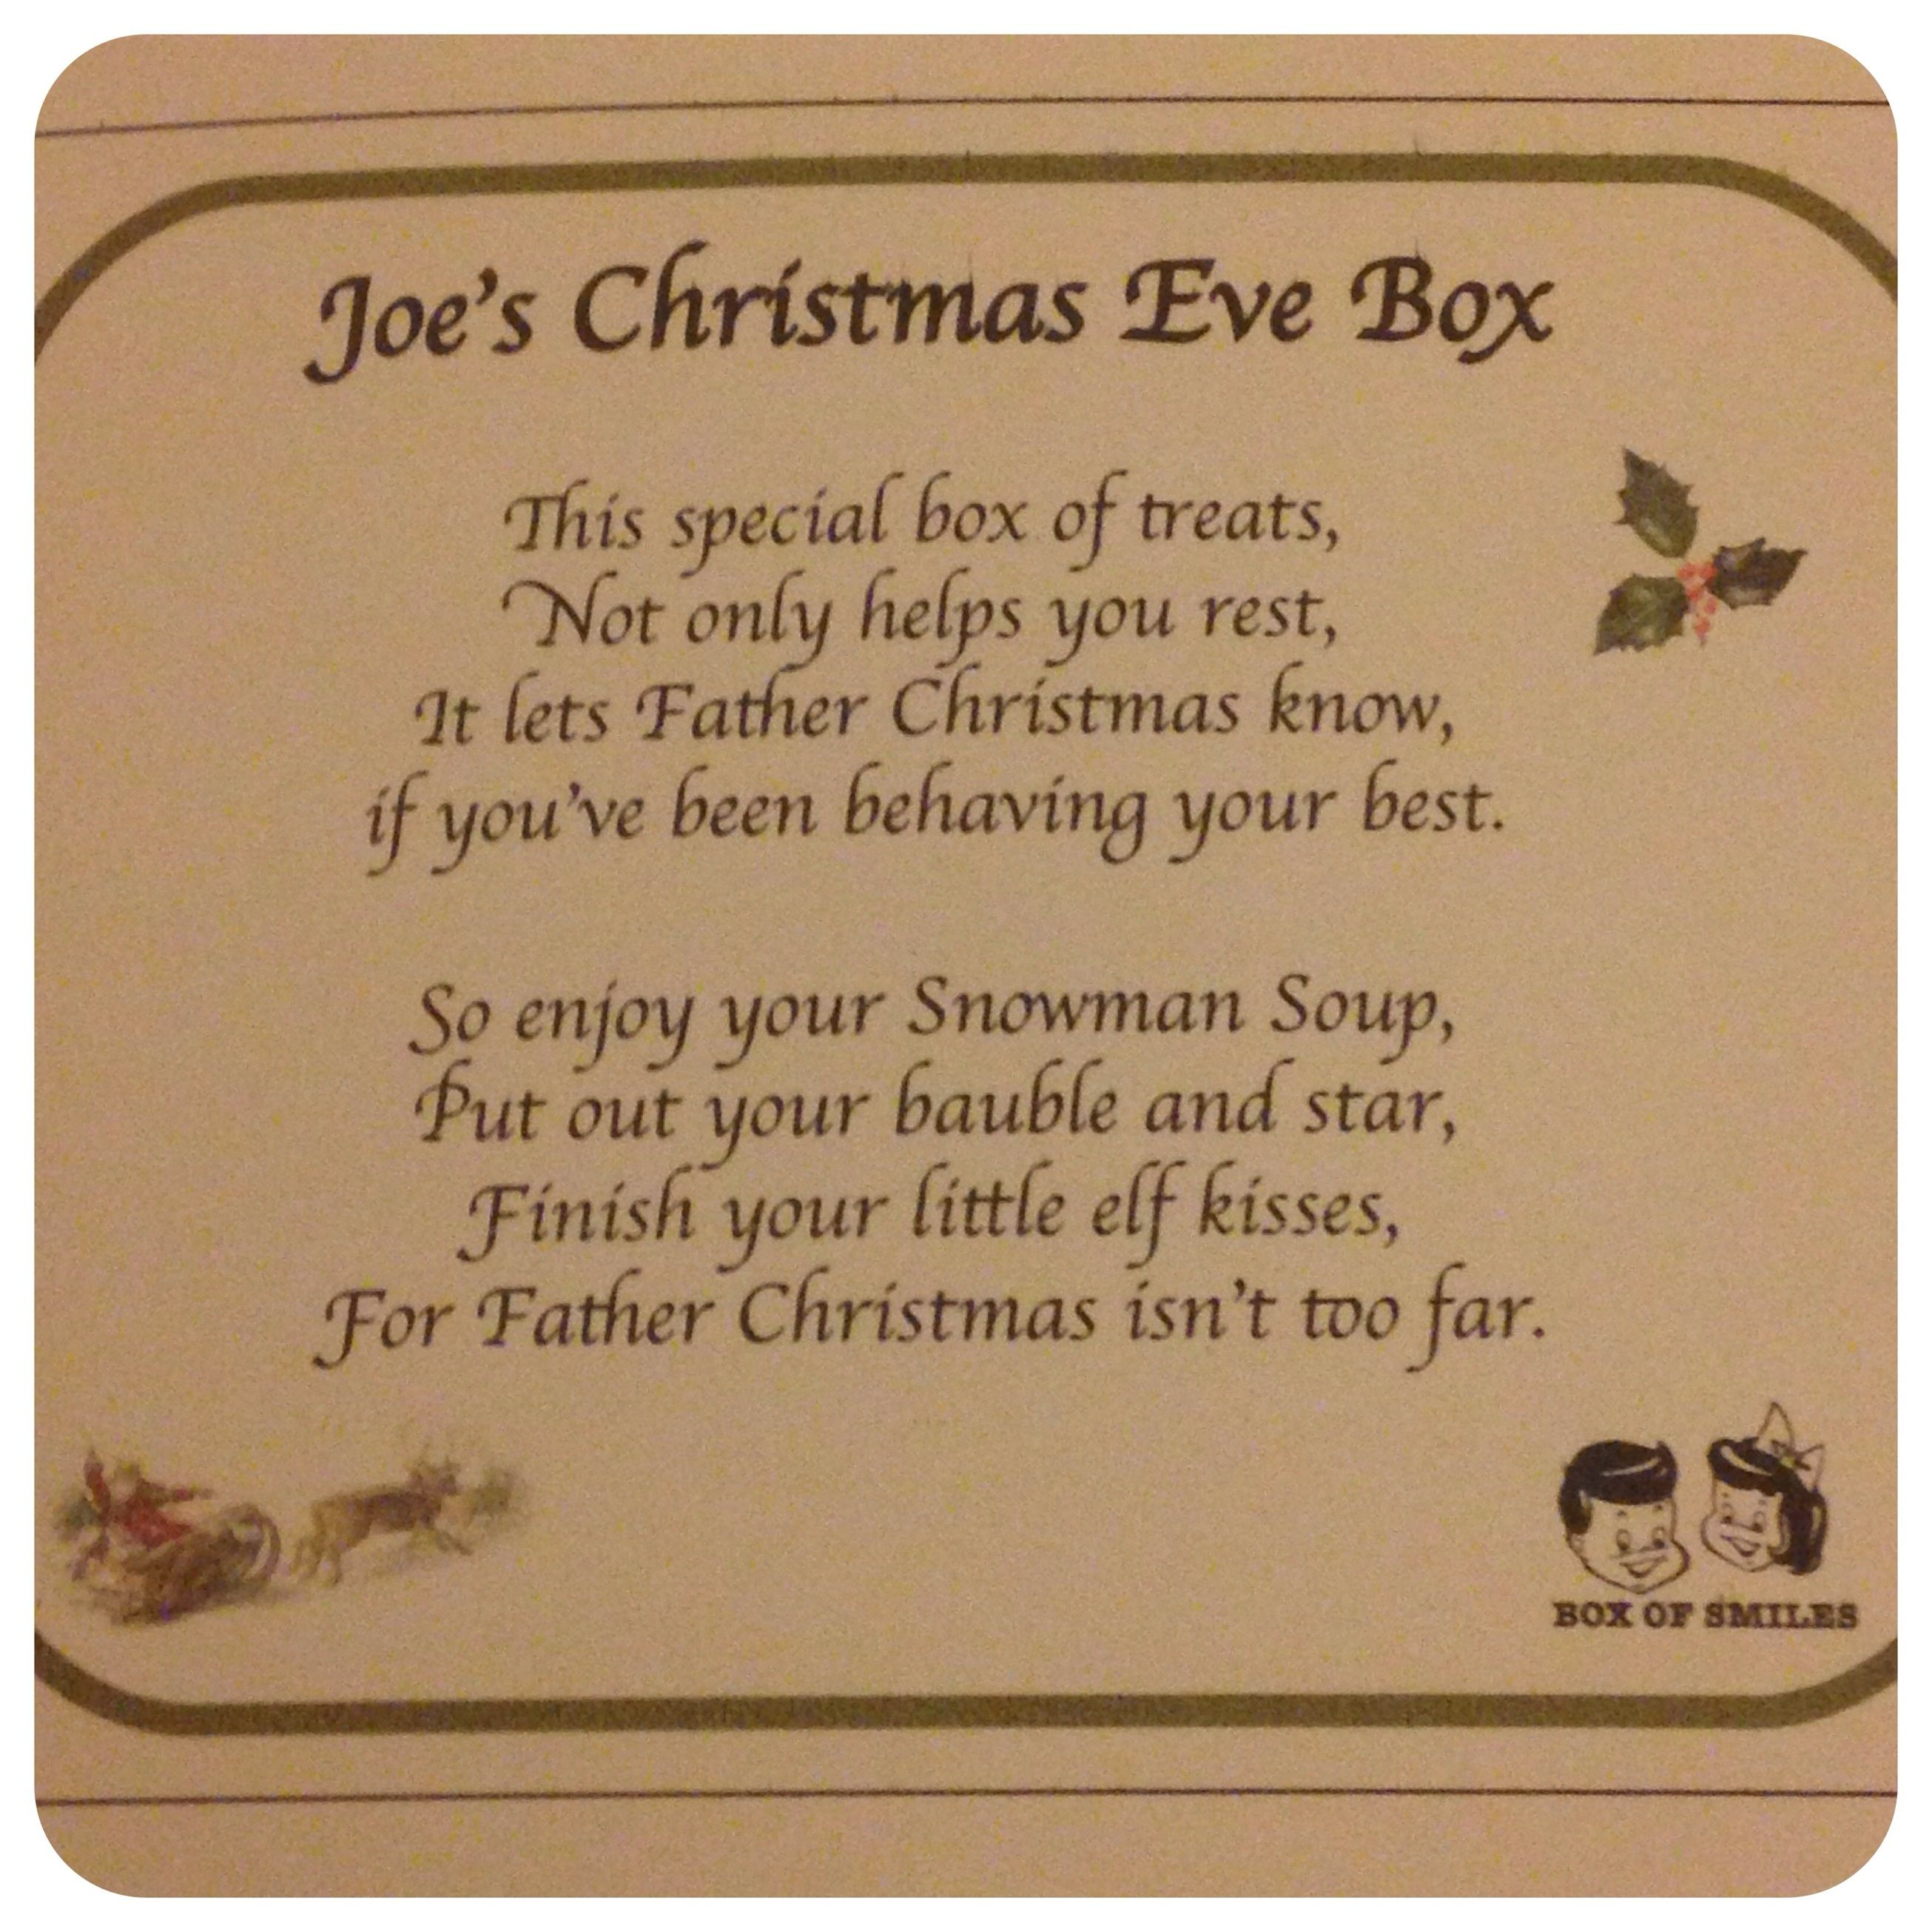 christmas eve box poem - Google Search | chrismas eve box ideas ...